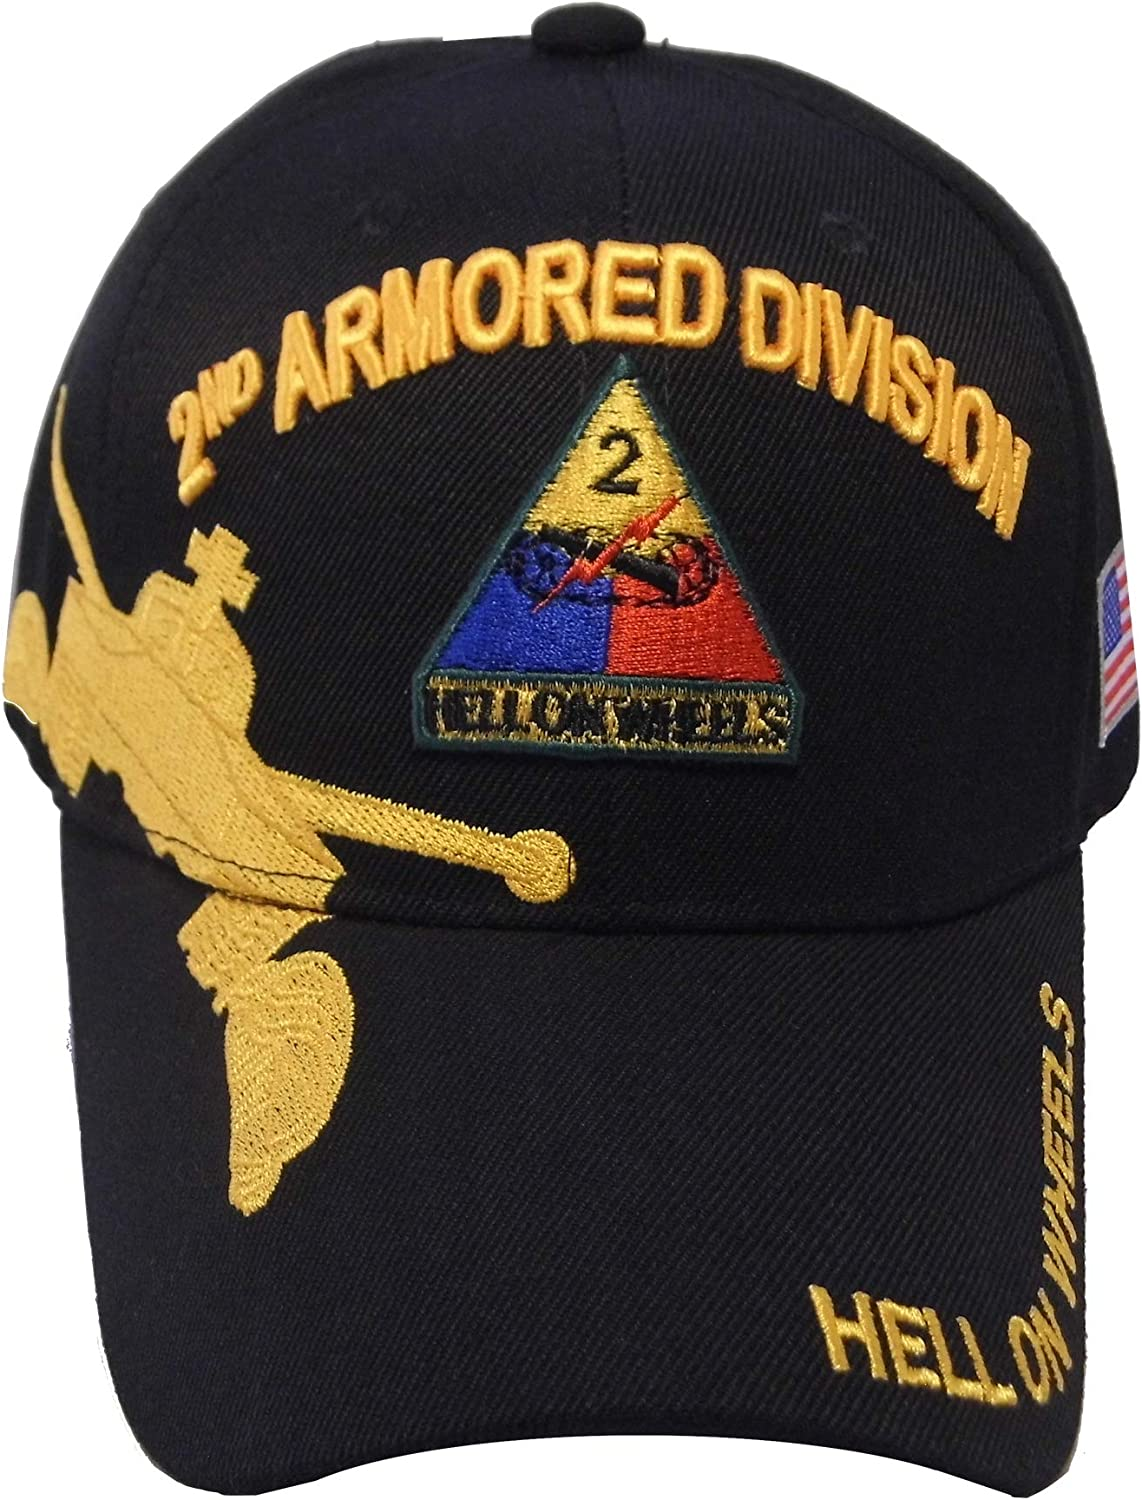 US Warriors U.S. Army 1st 2nd Division Baseball Colorado Springs Mall Hat Armored low-pricing 3rd